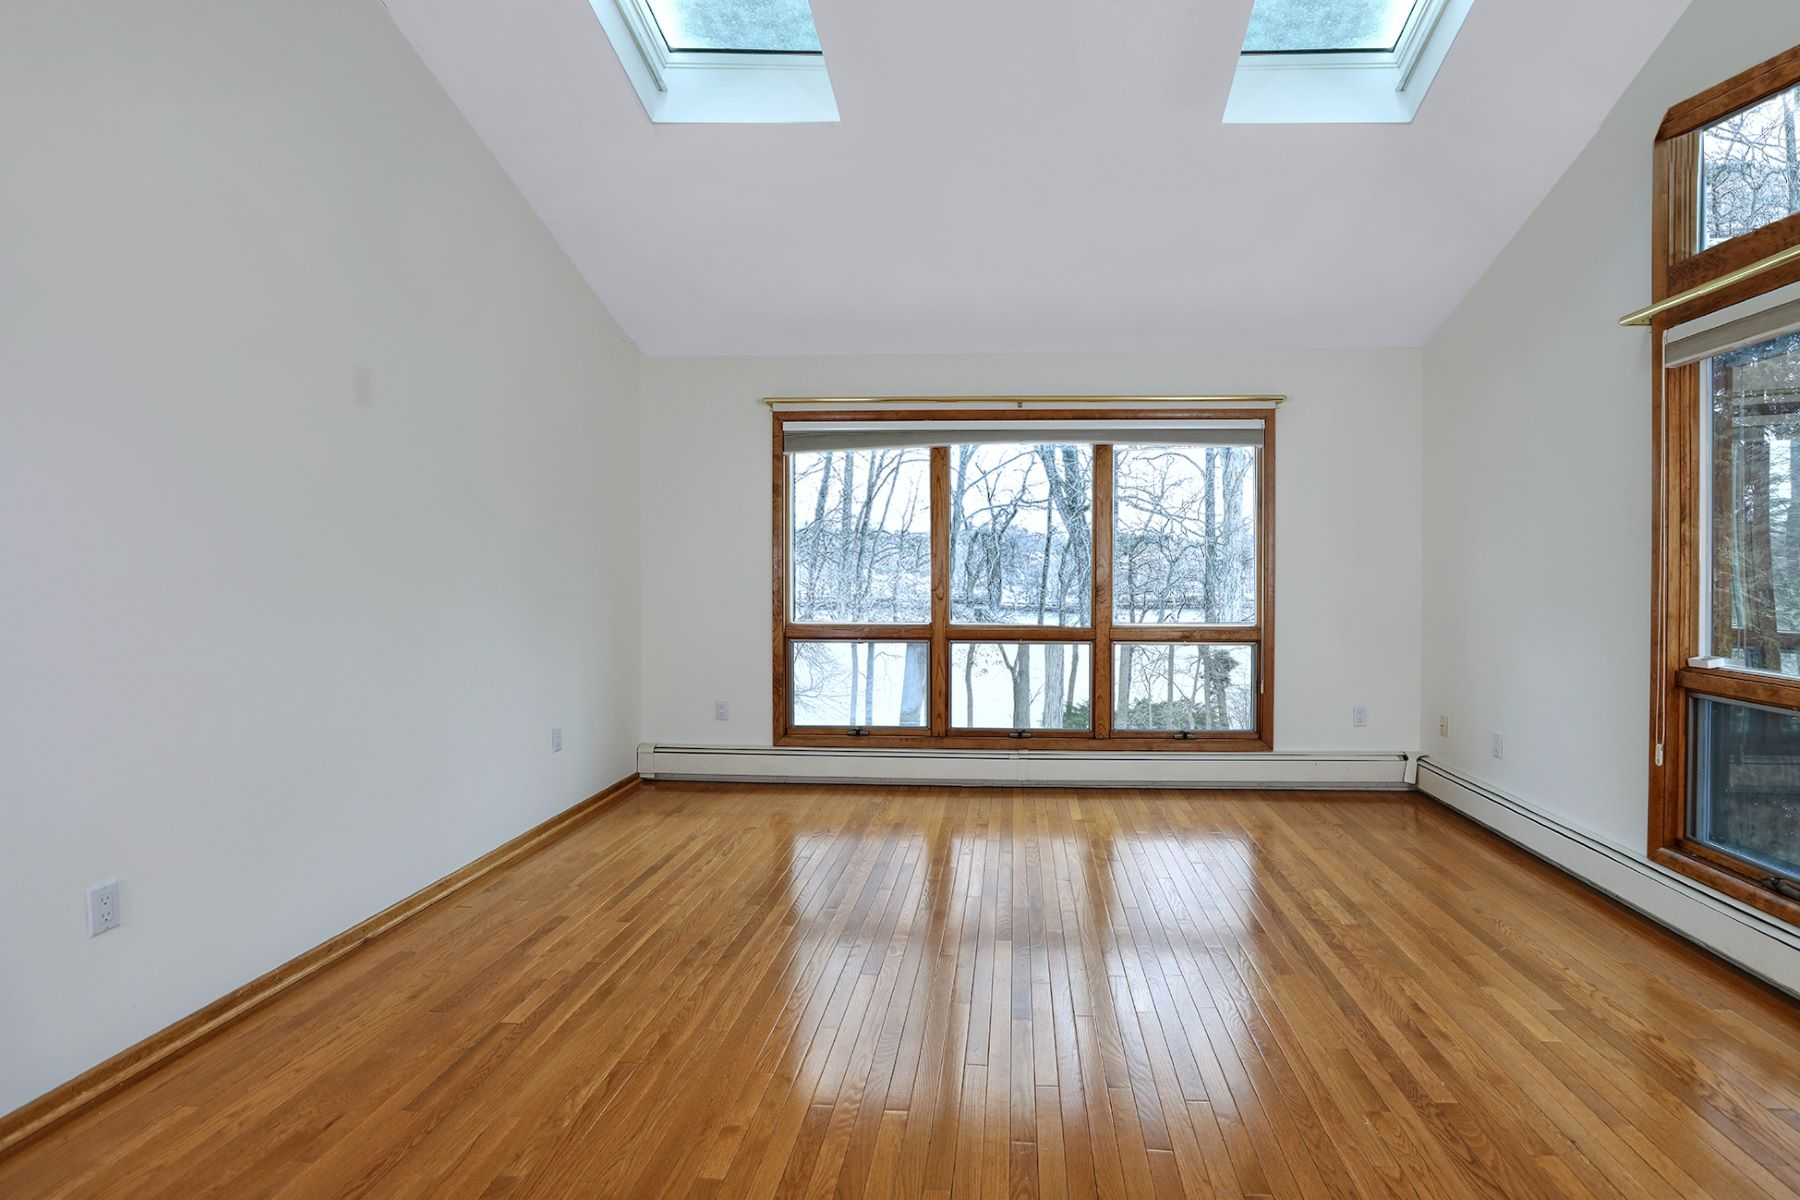 Additional photo for property listing at In Riverside: Light, Space, & Lake Views for Days 621 Lake Drive, Princeton, New Jersey 08540 United States